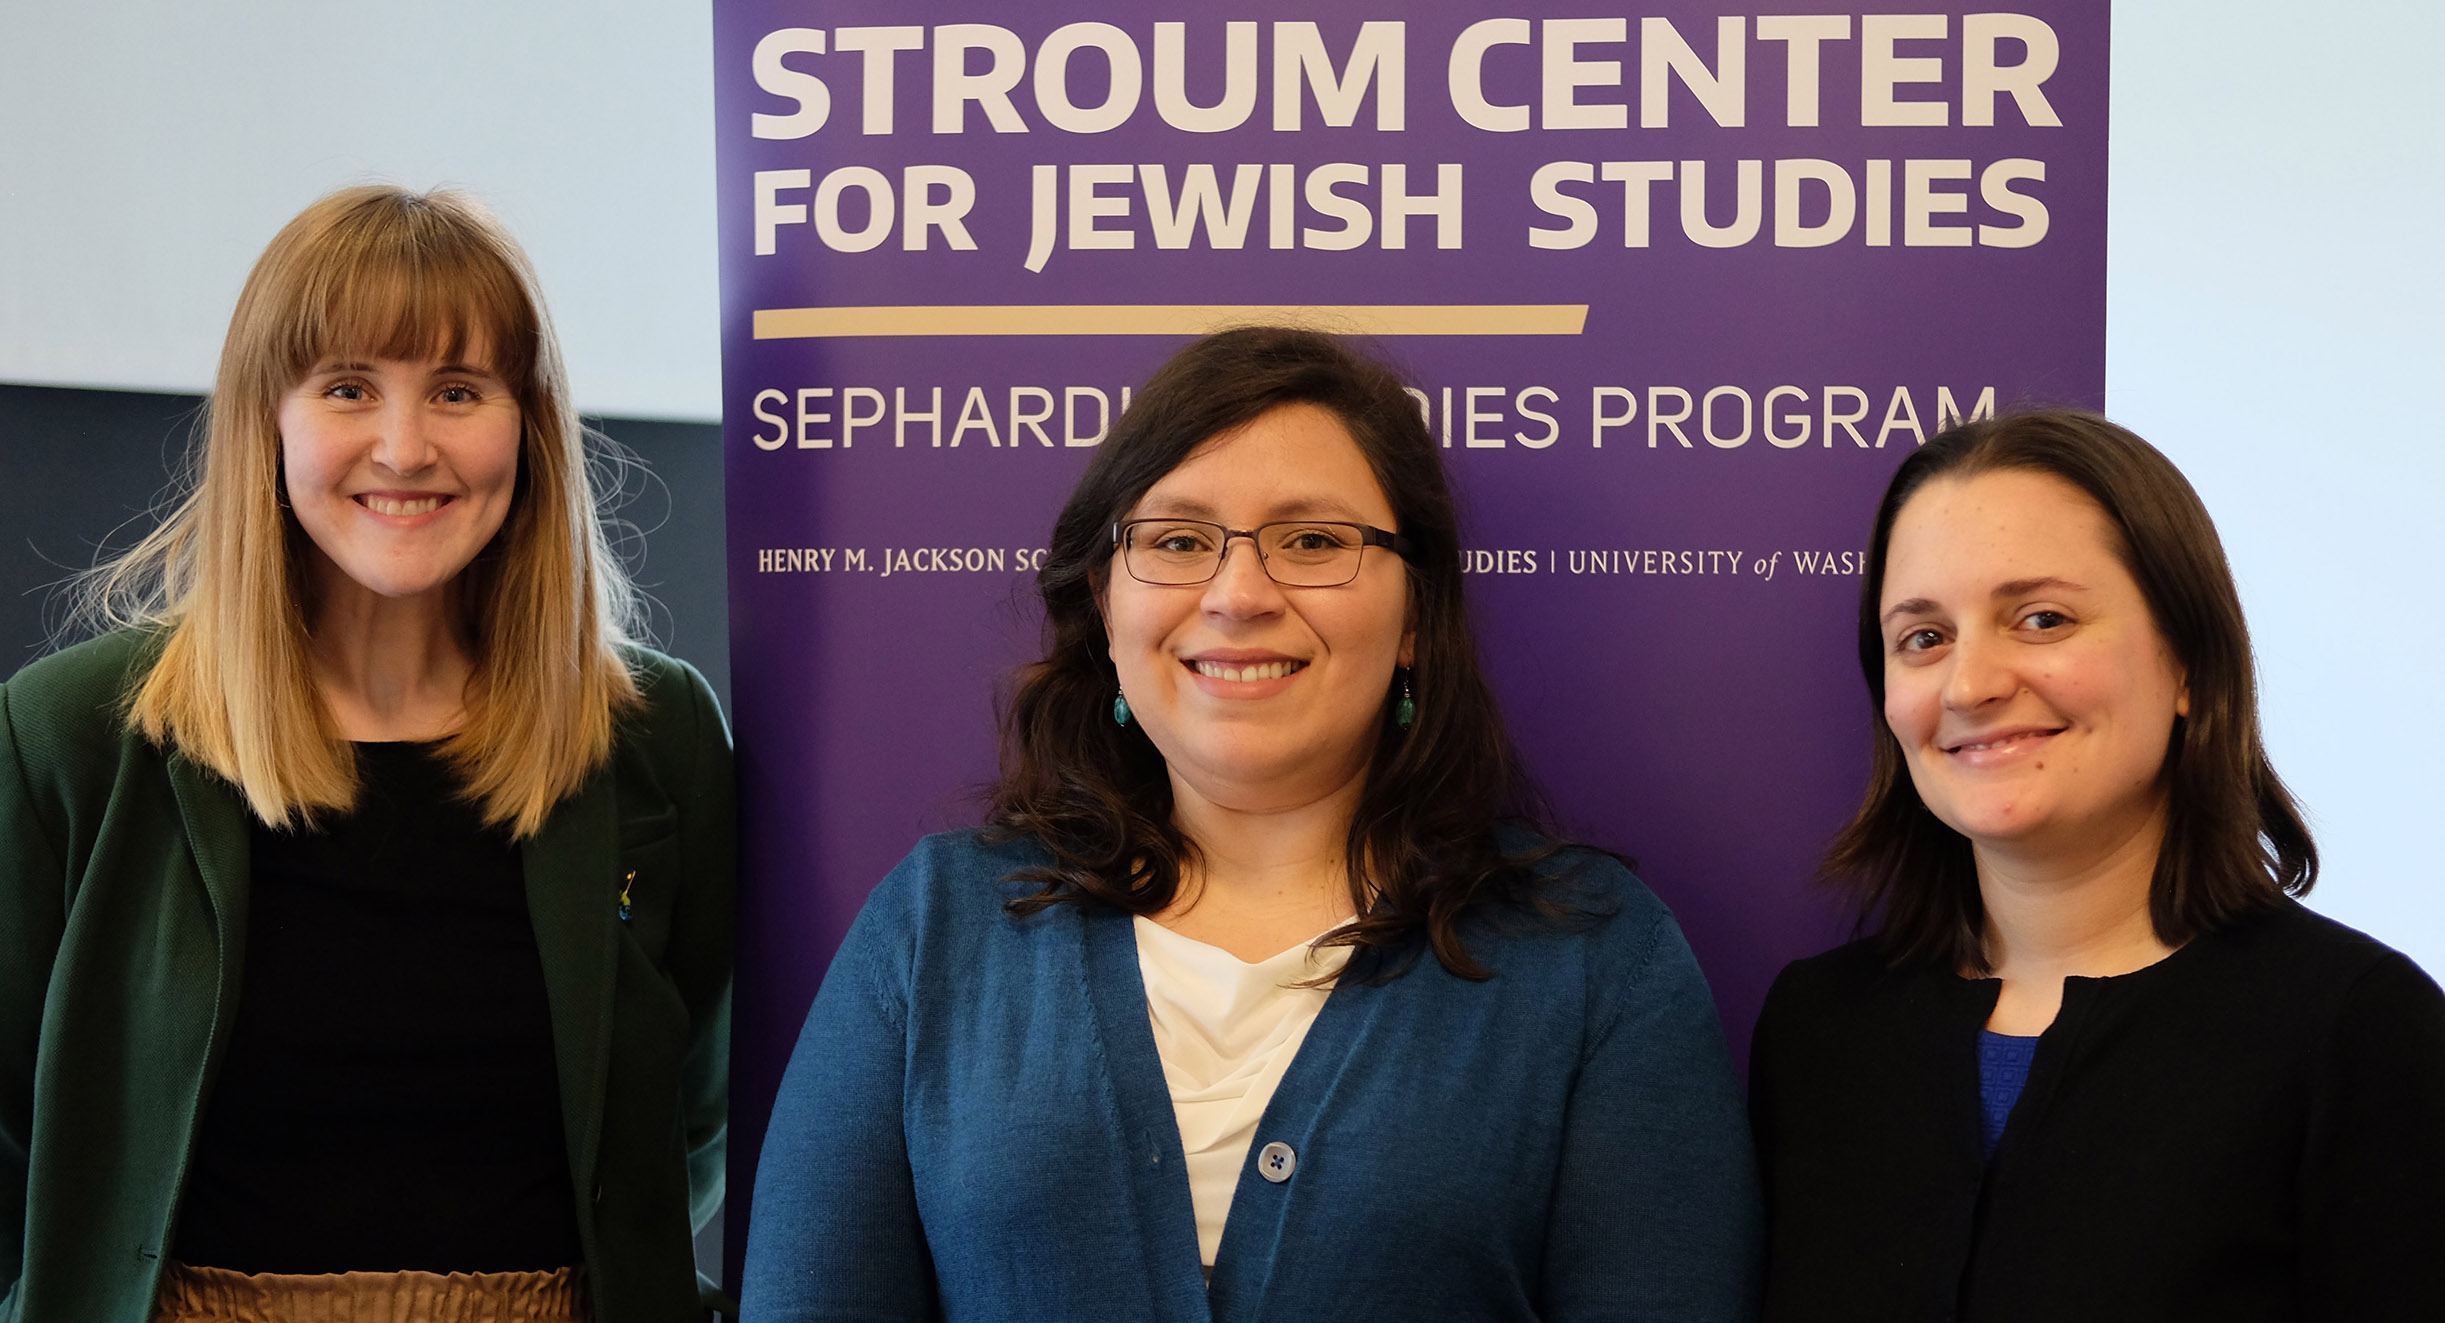 Three graduate fellows smile while standing in front of a purple Stroum Center banner after a research presentation